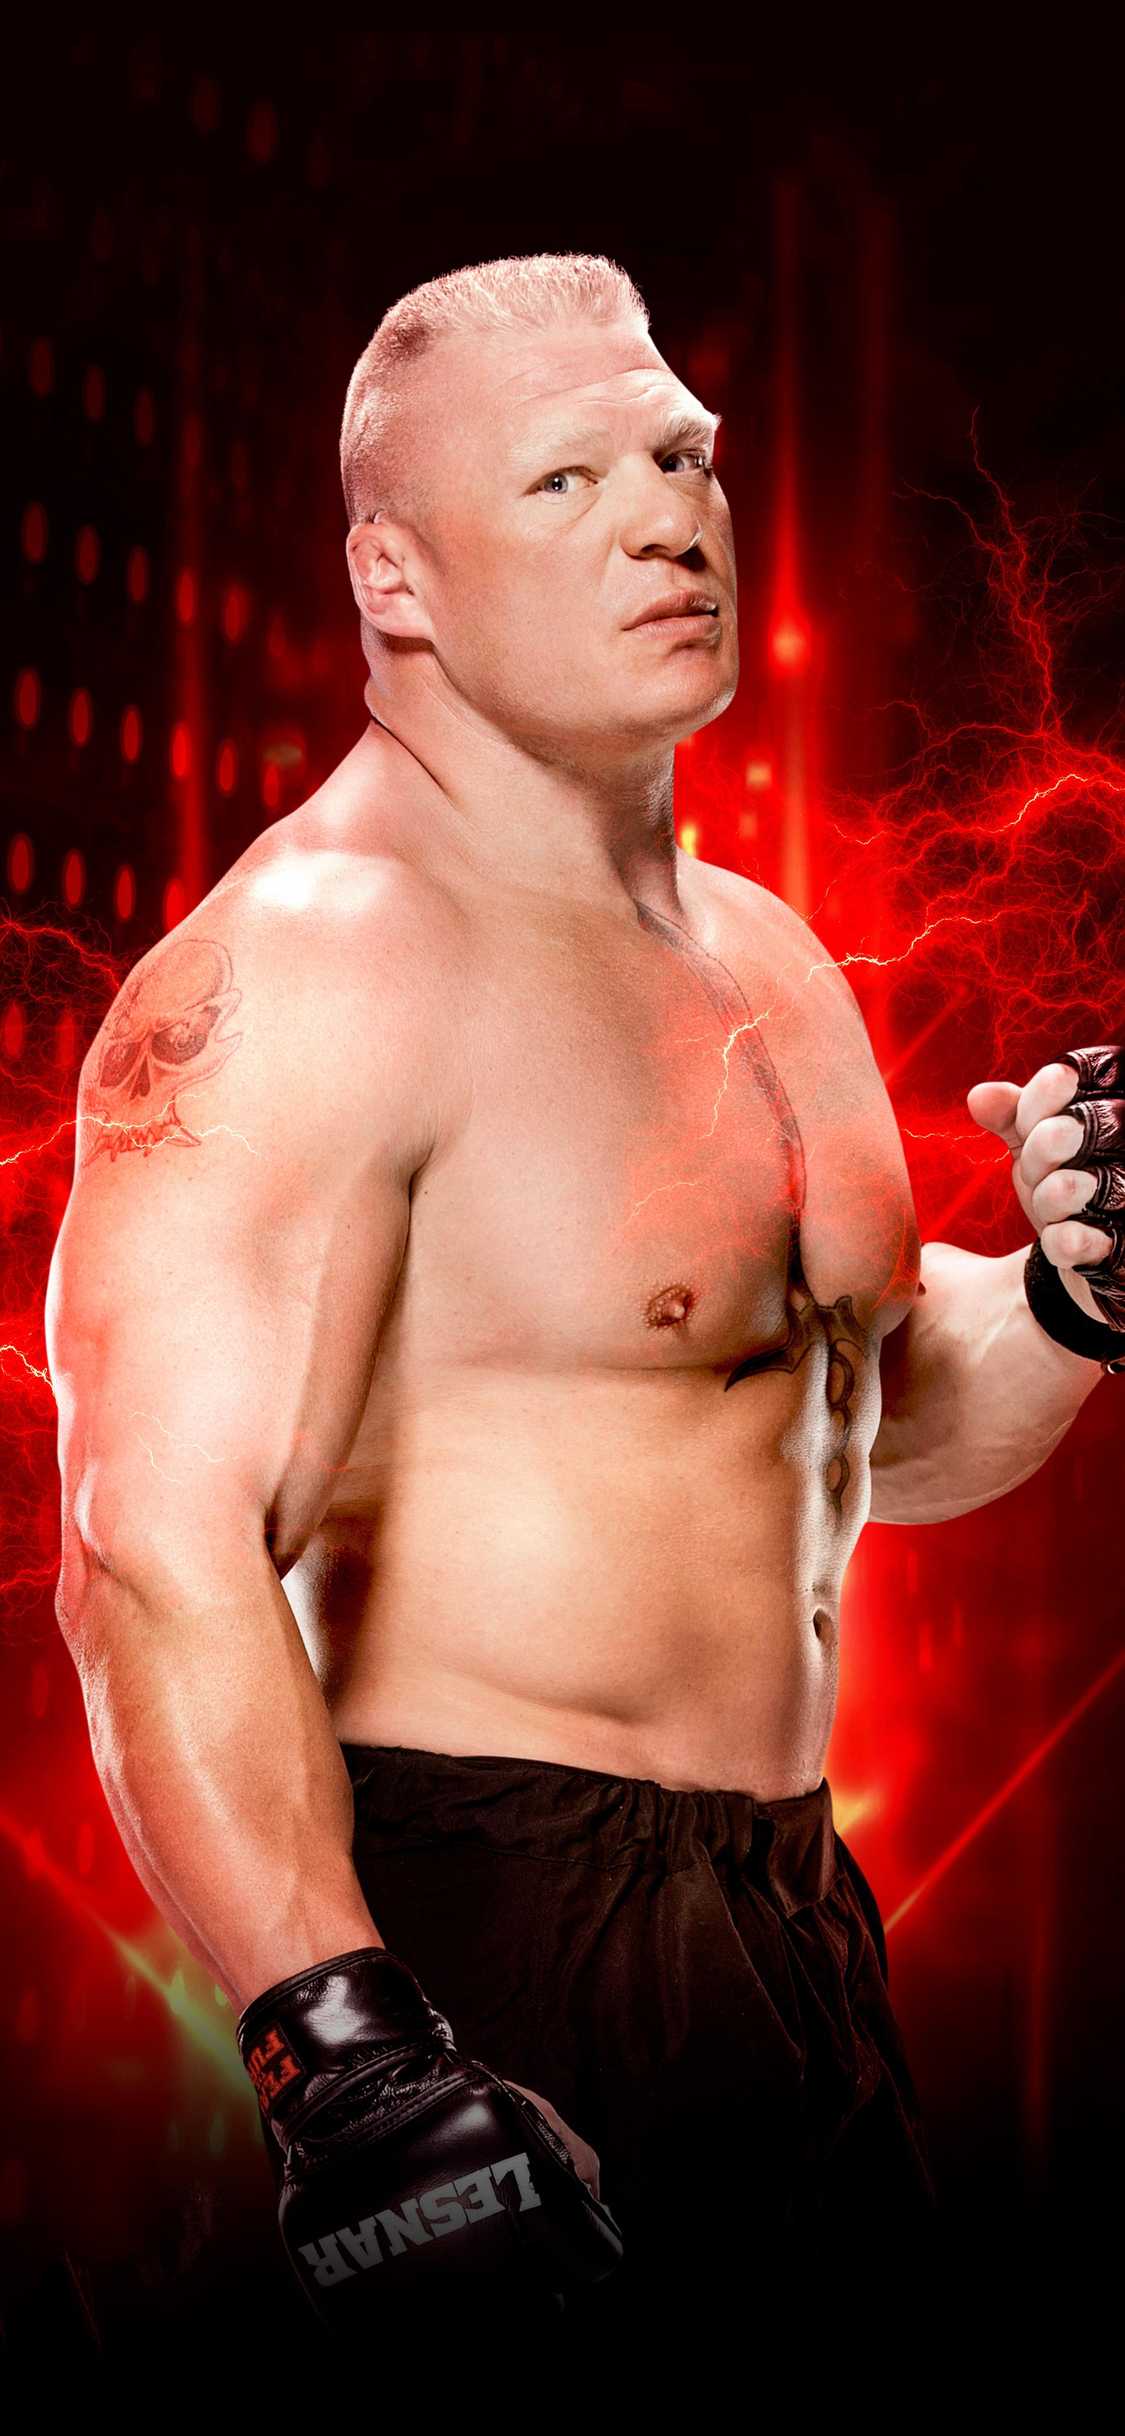 1125x2436 Brock Lesnar Wwe 2k19 Iphone Xs Iphone 10 Iphone X Hd 4k Wallpapers Images Backgrounds Photos And Pictures